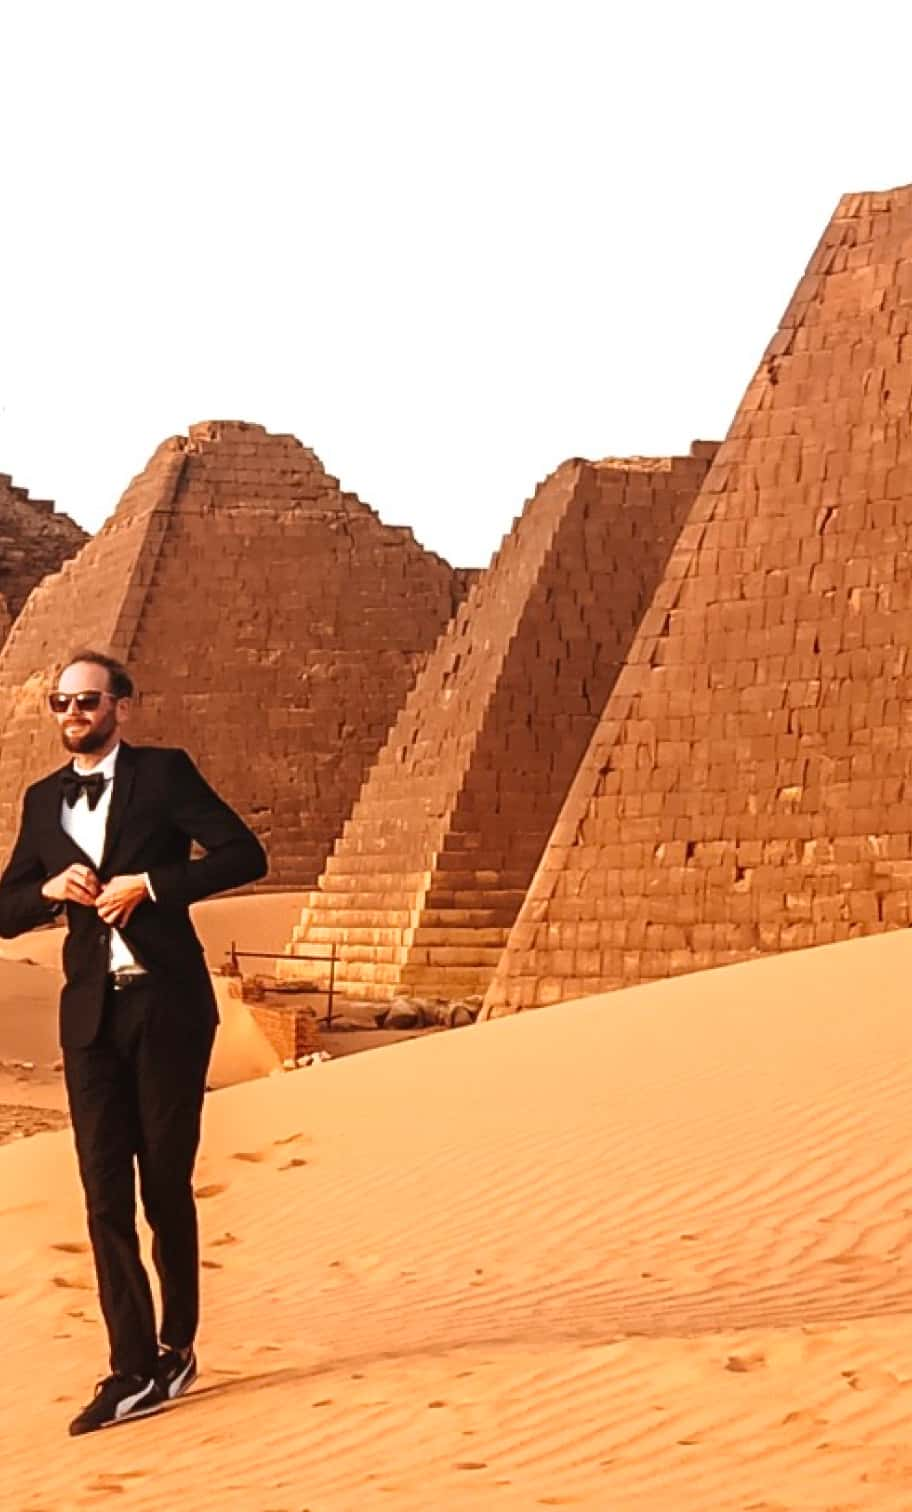 Garrett Gravesen poses in front of the pyramids in Egypt.